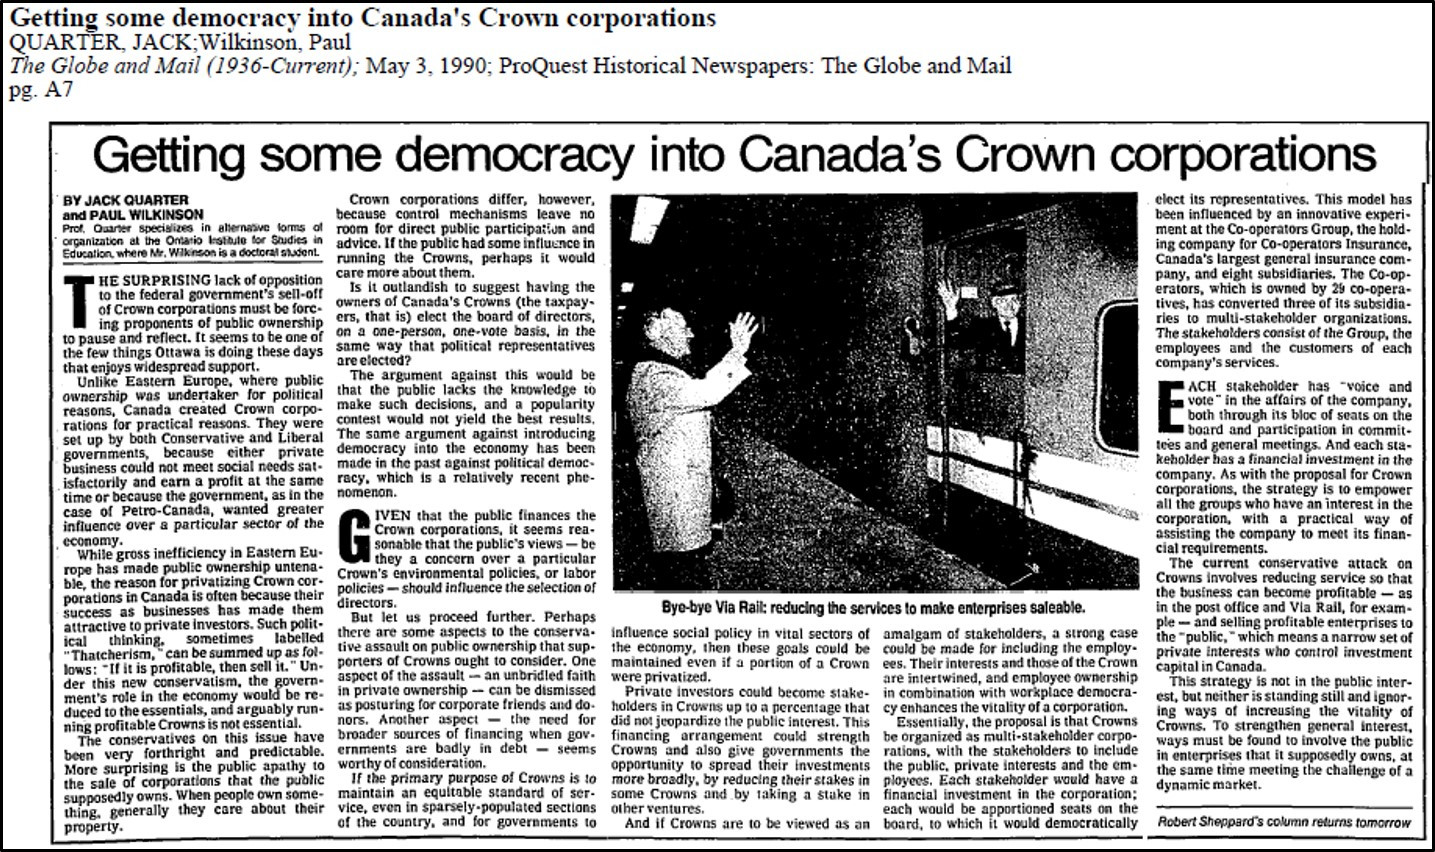 Getting some democracy 1990.jpg